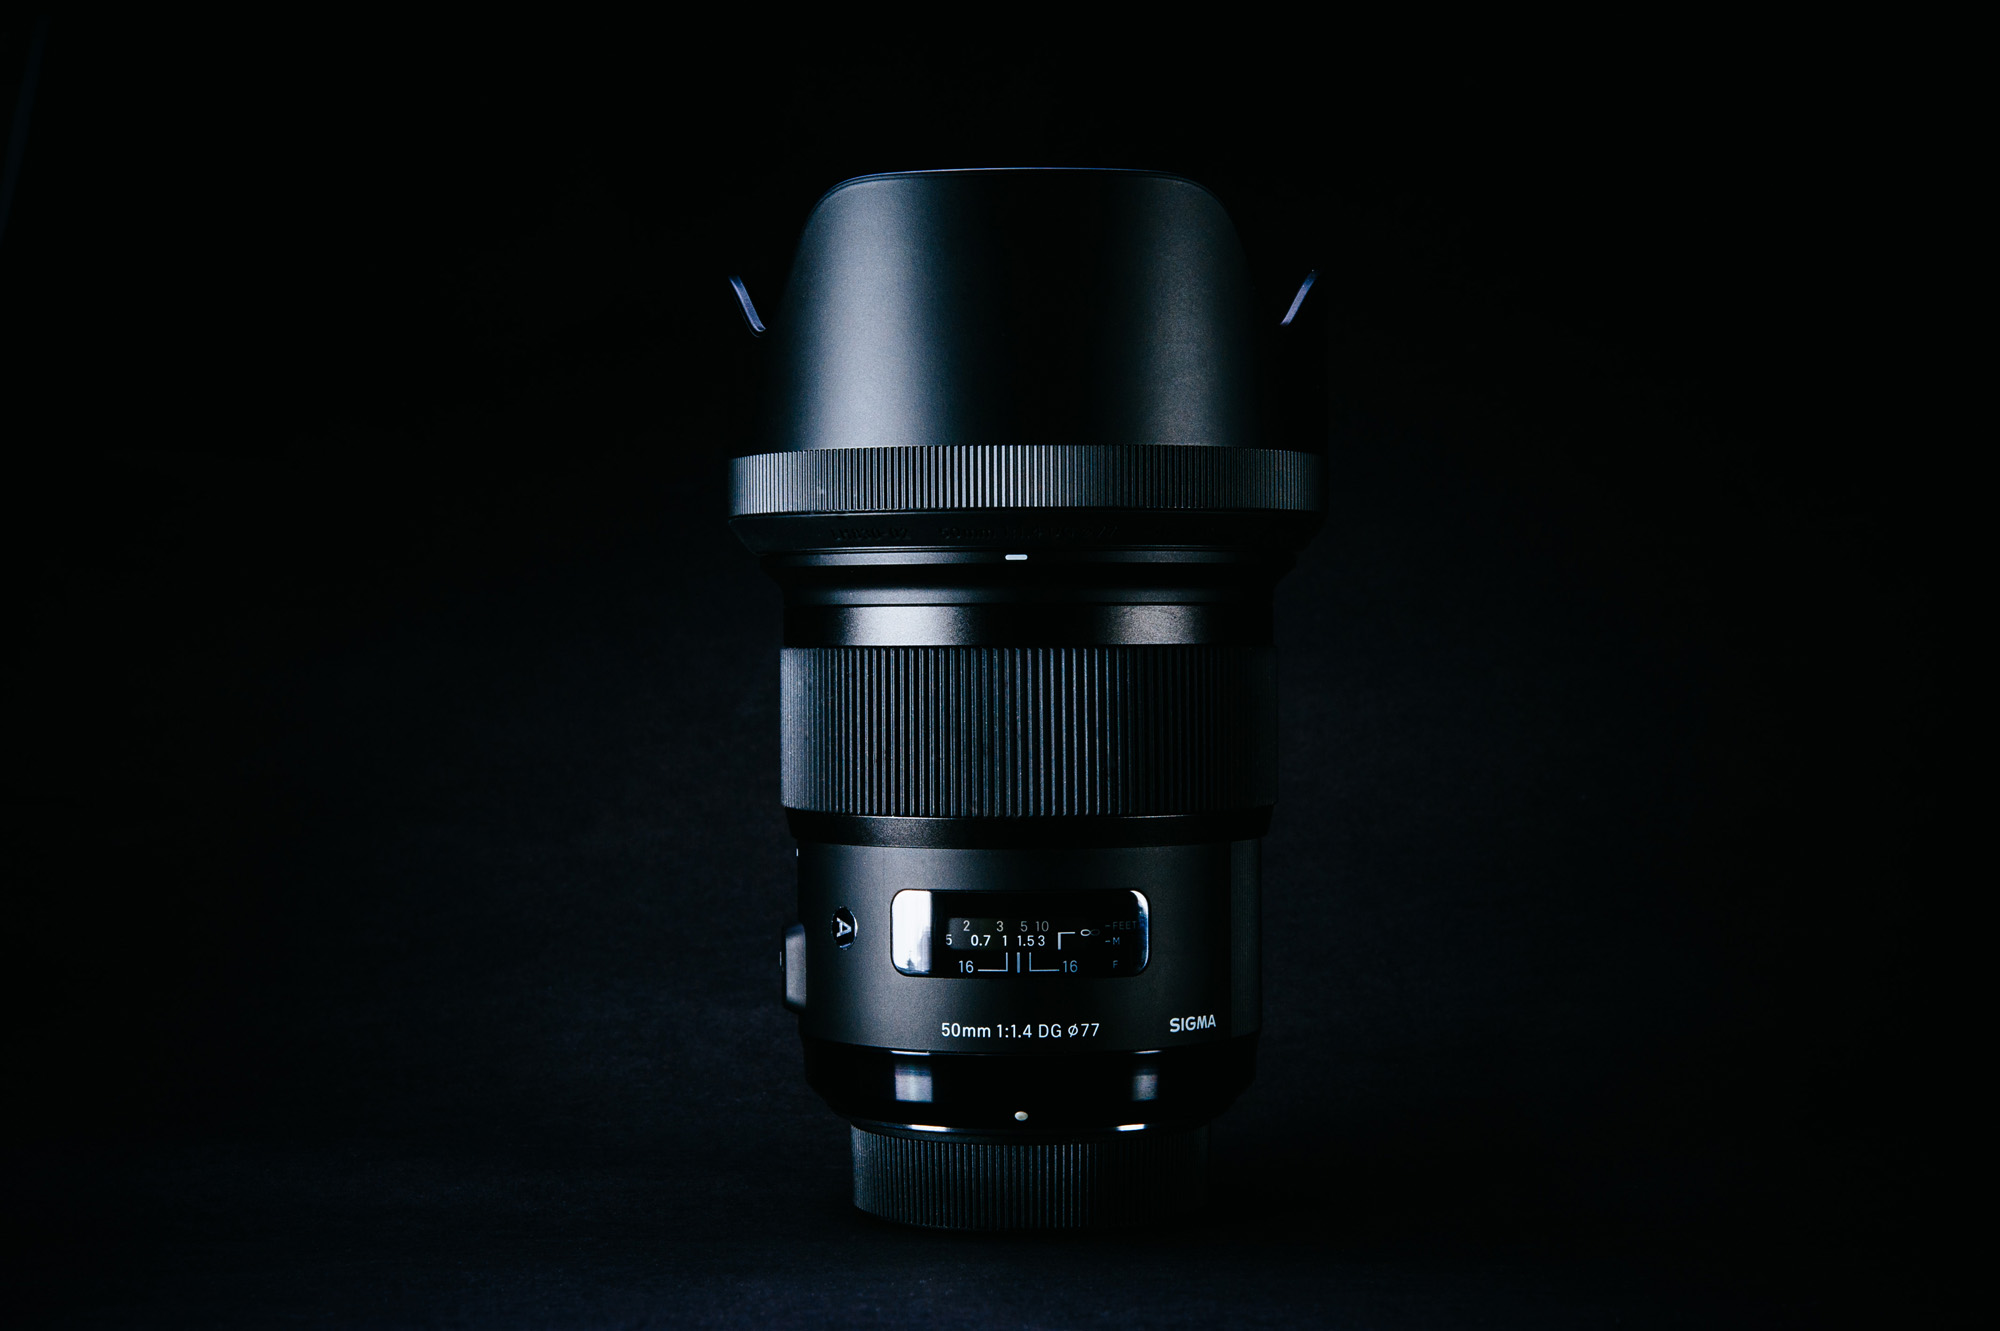 sigma-50mm-f-1.4-DG-HSM-ART-review-01